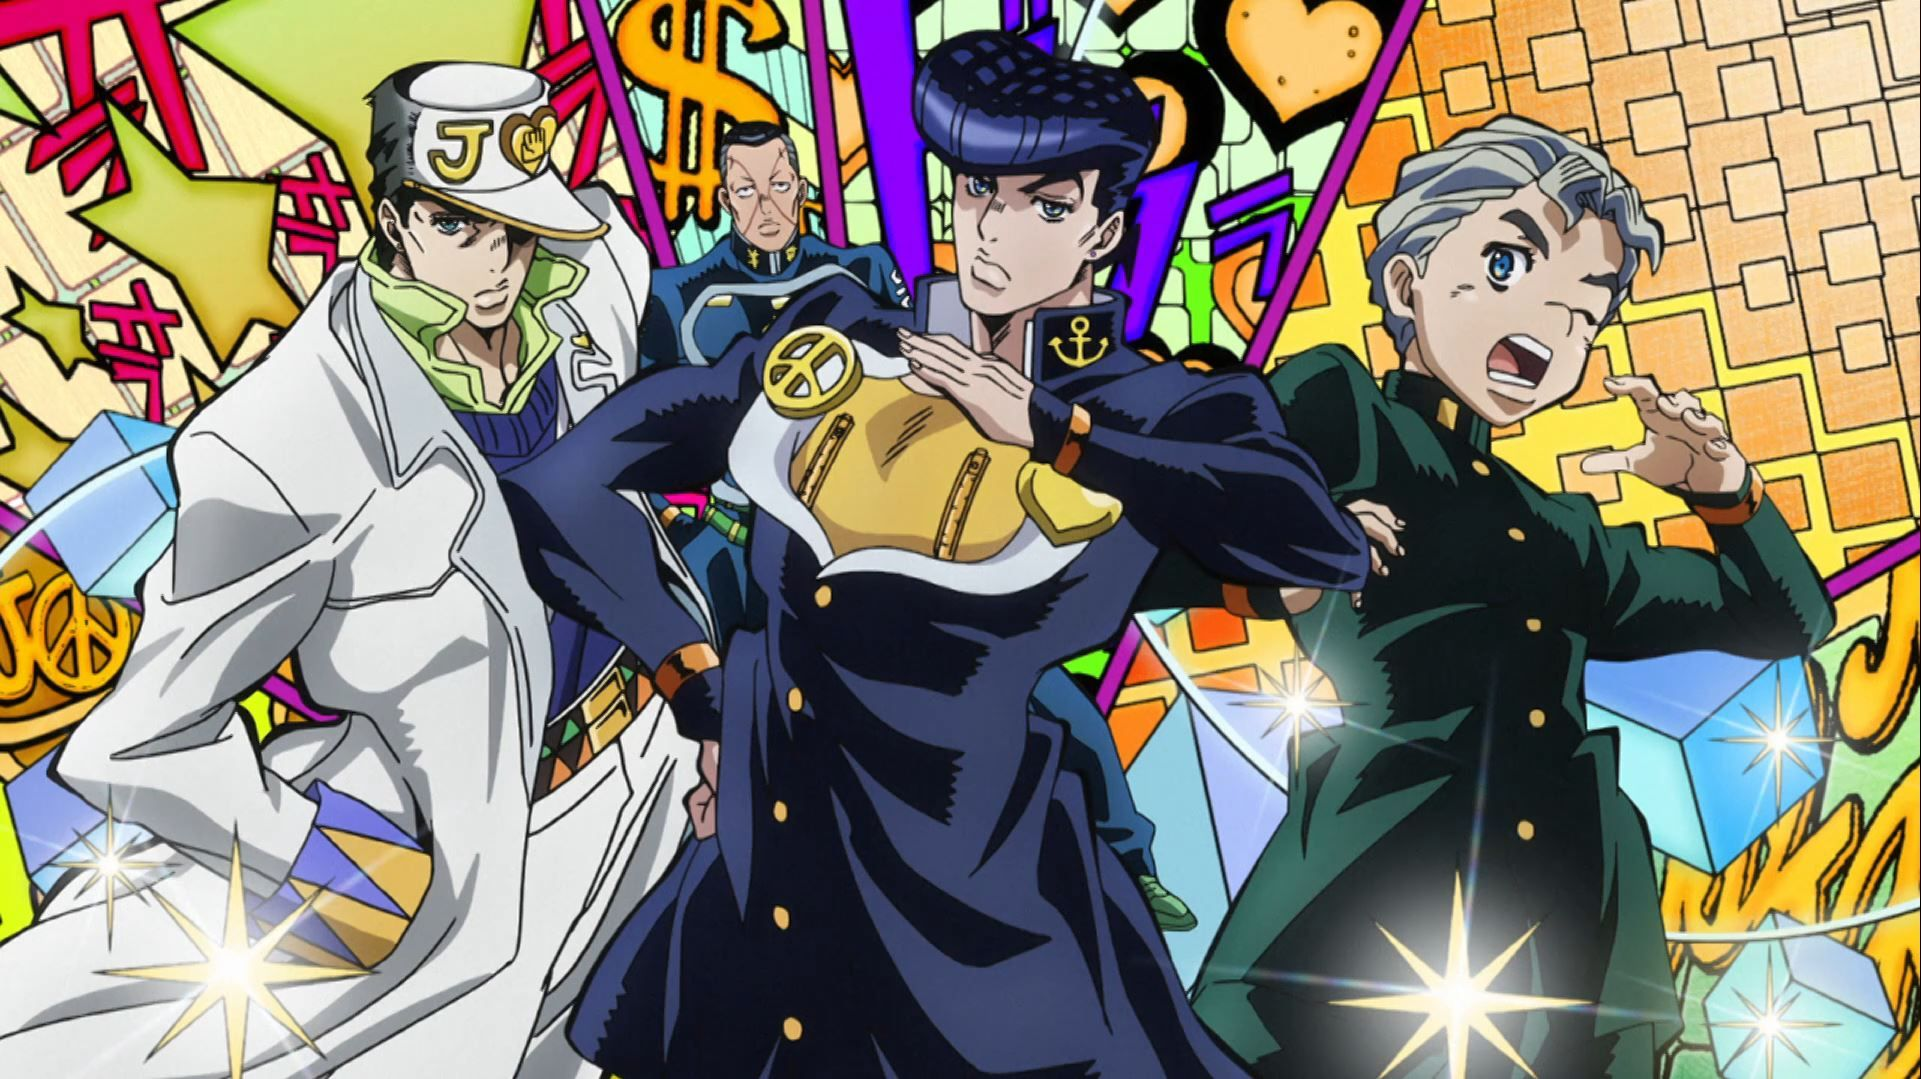 Pin by Esdras P. Medina on Diamond is Unbreakable (With